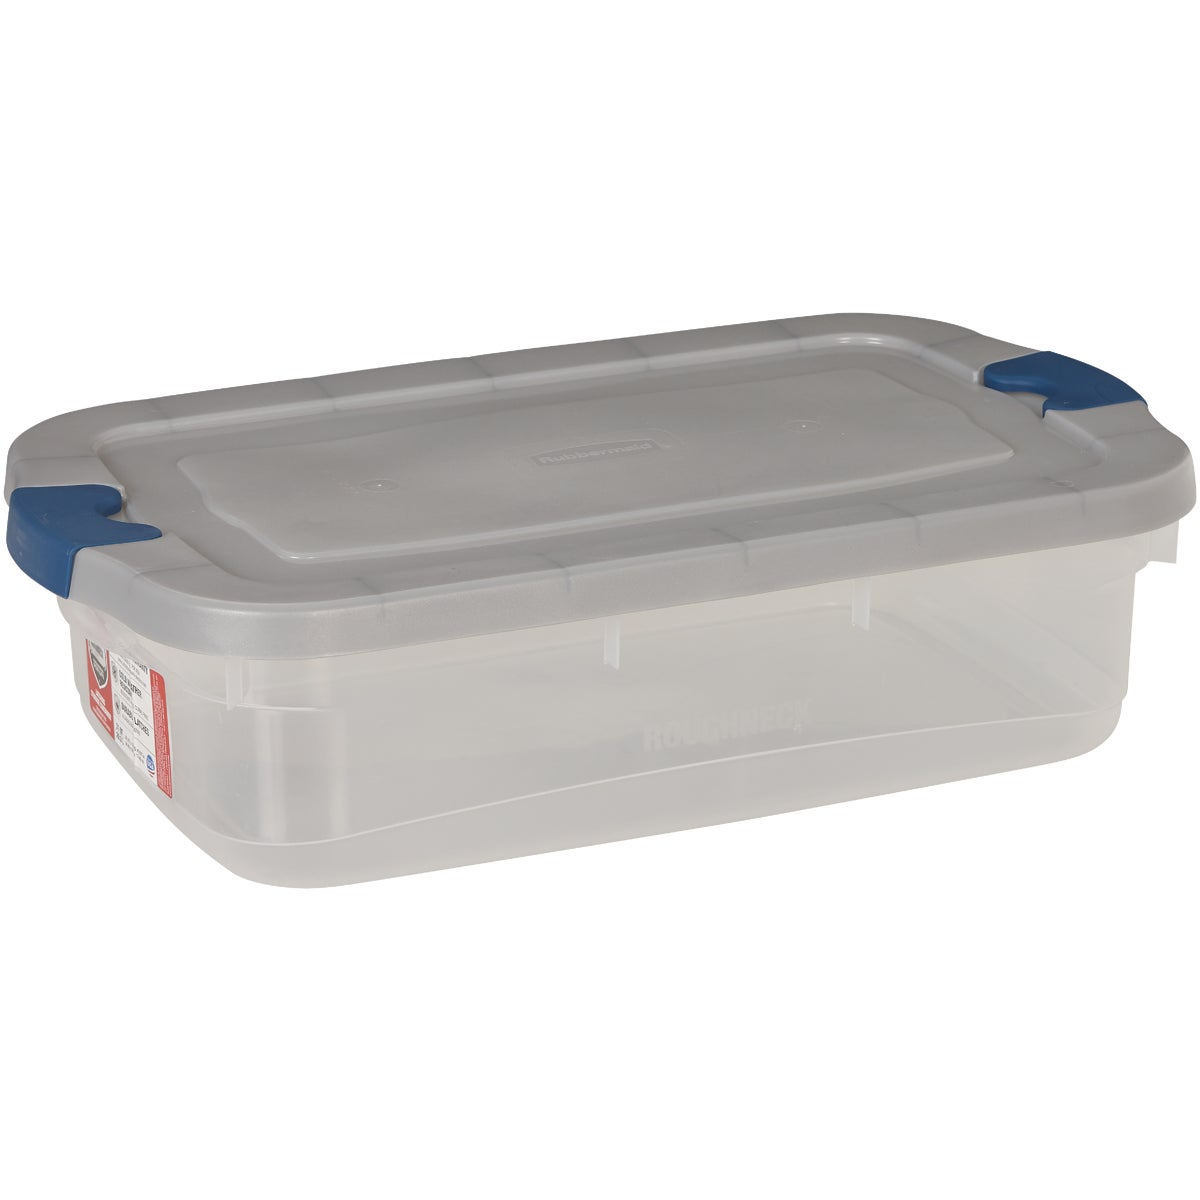 31QT CLR ROUGHNECK TOTE - FG3R4000CLSAV by Rubbermaid Home